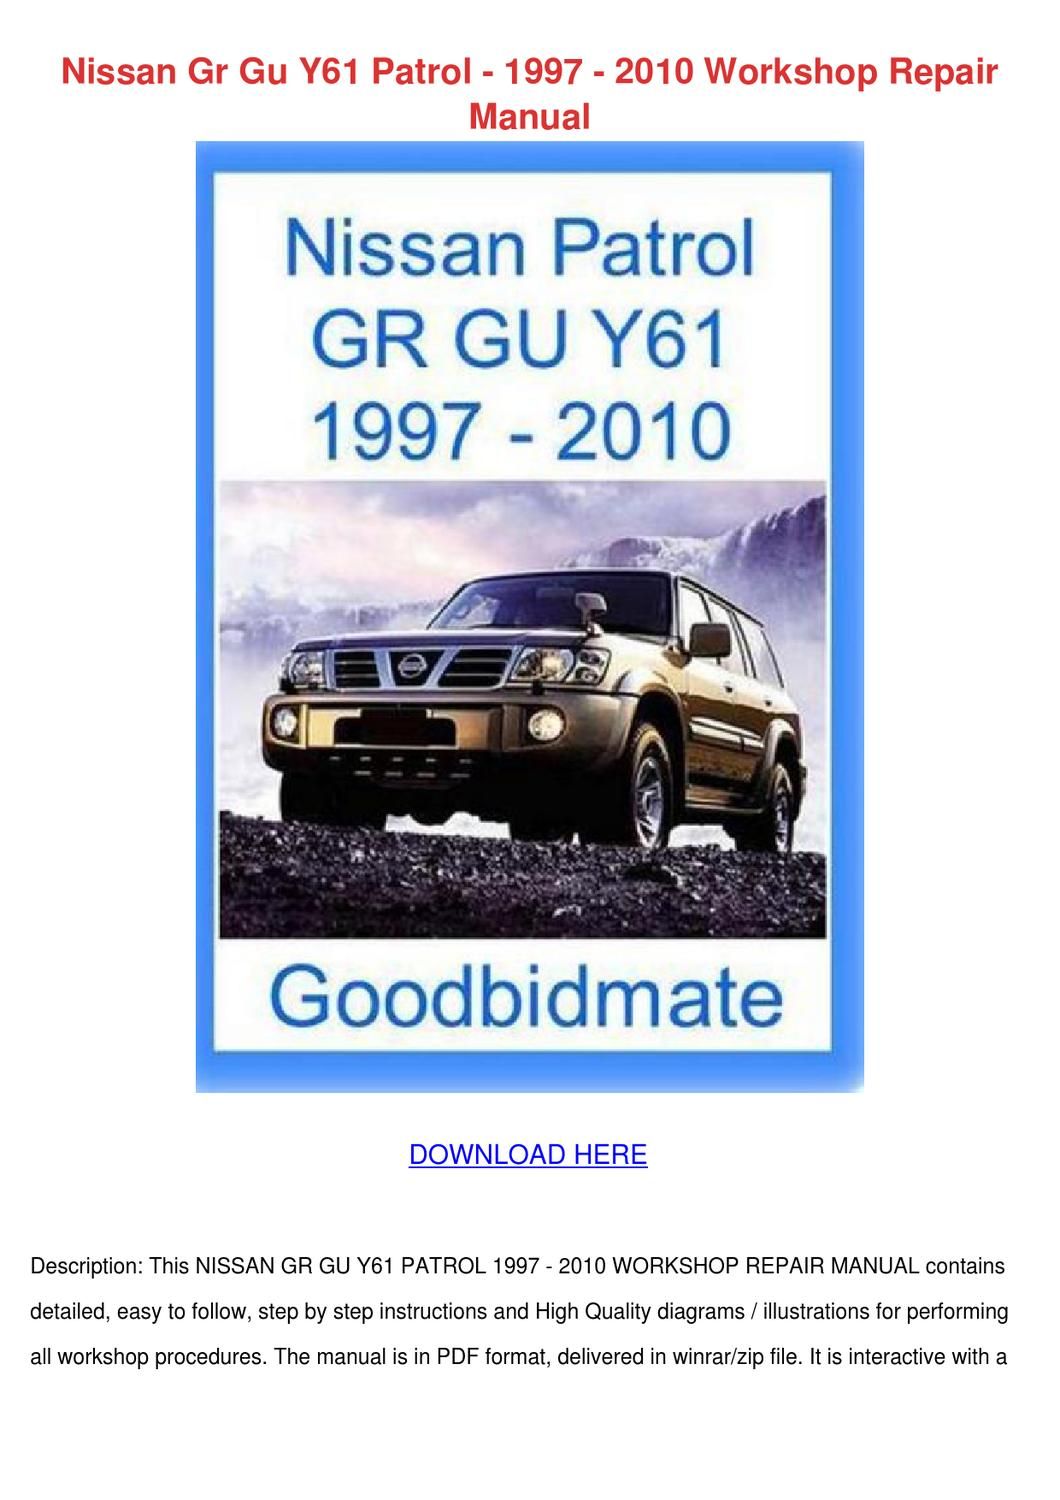 nissan patrol gu radio wiring diagram how to lewis dot gr y61 1997 2010 workshop re by